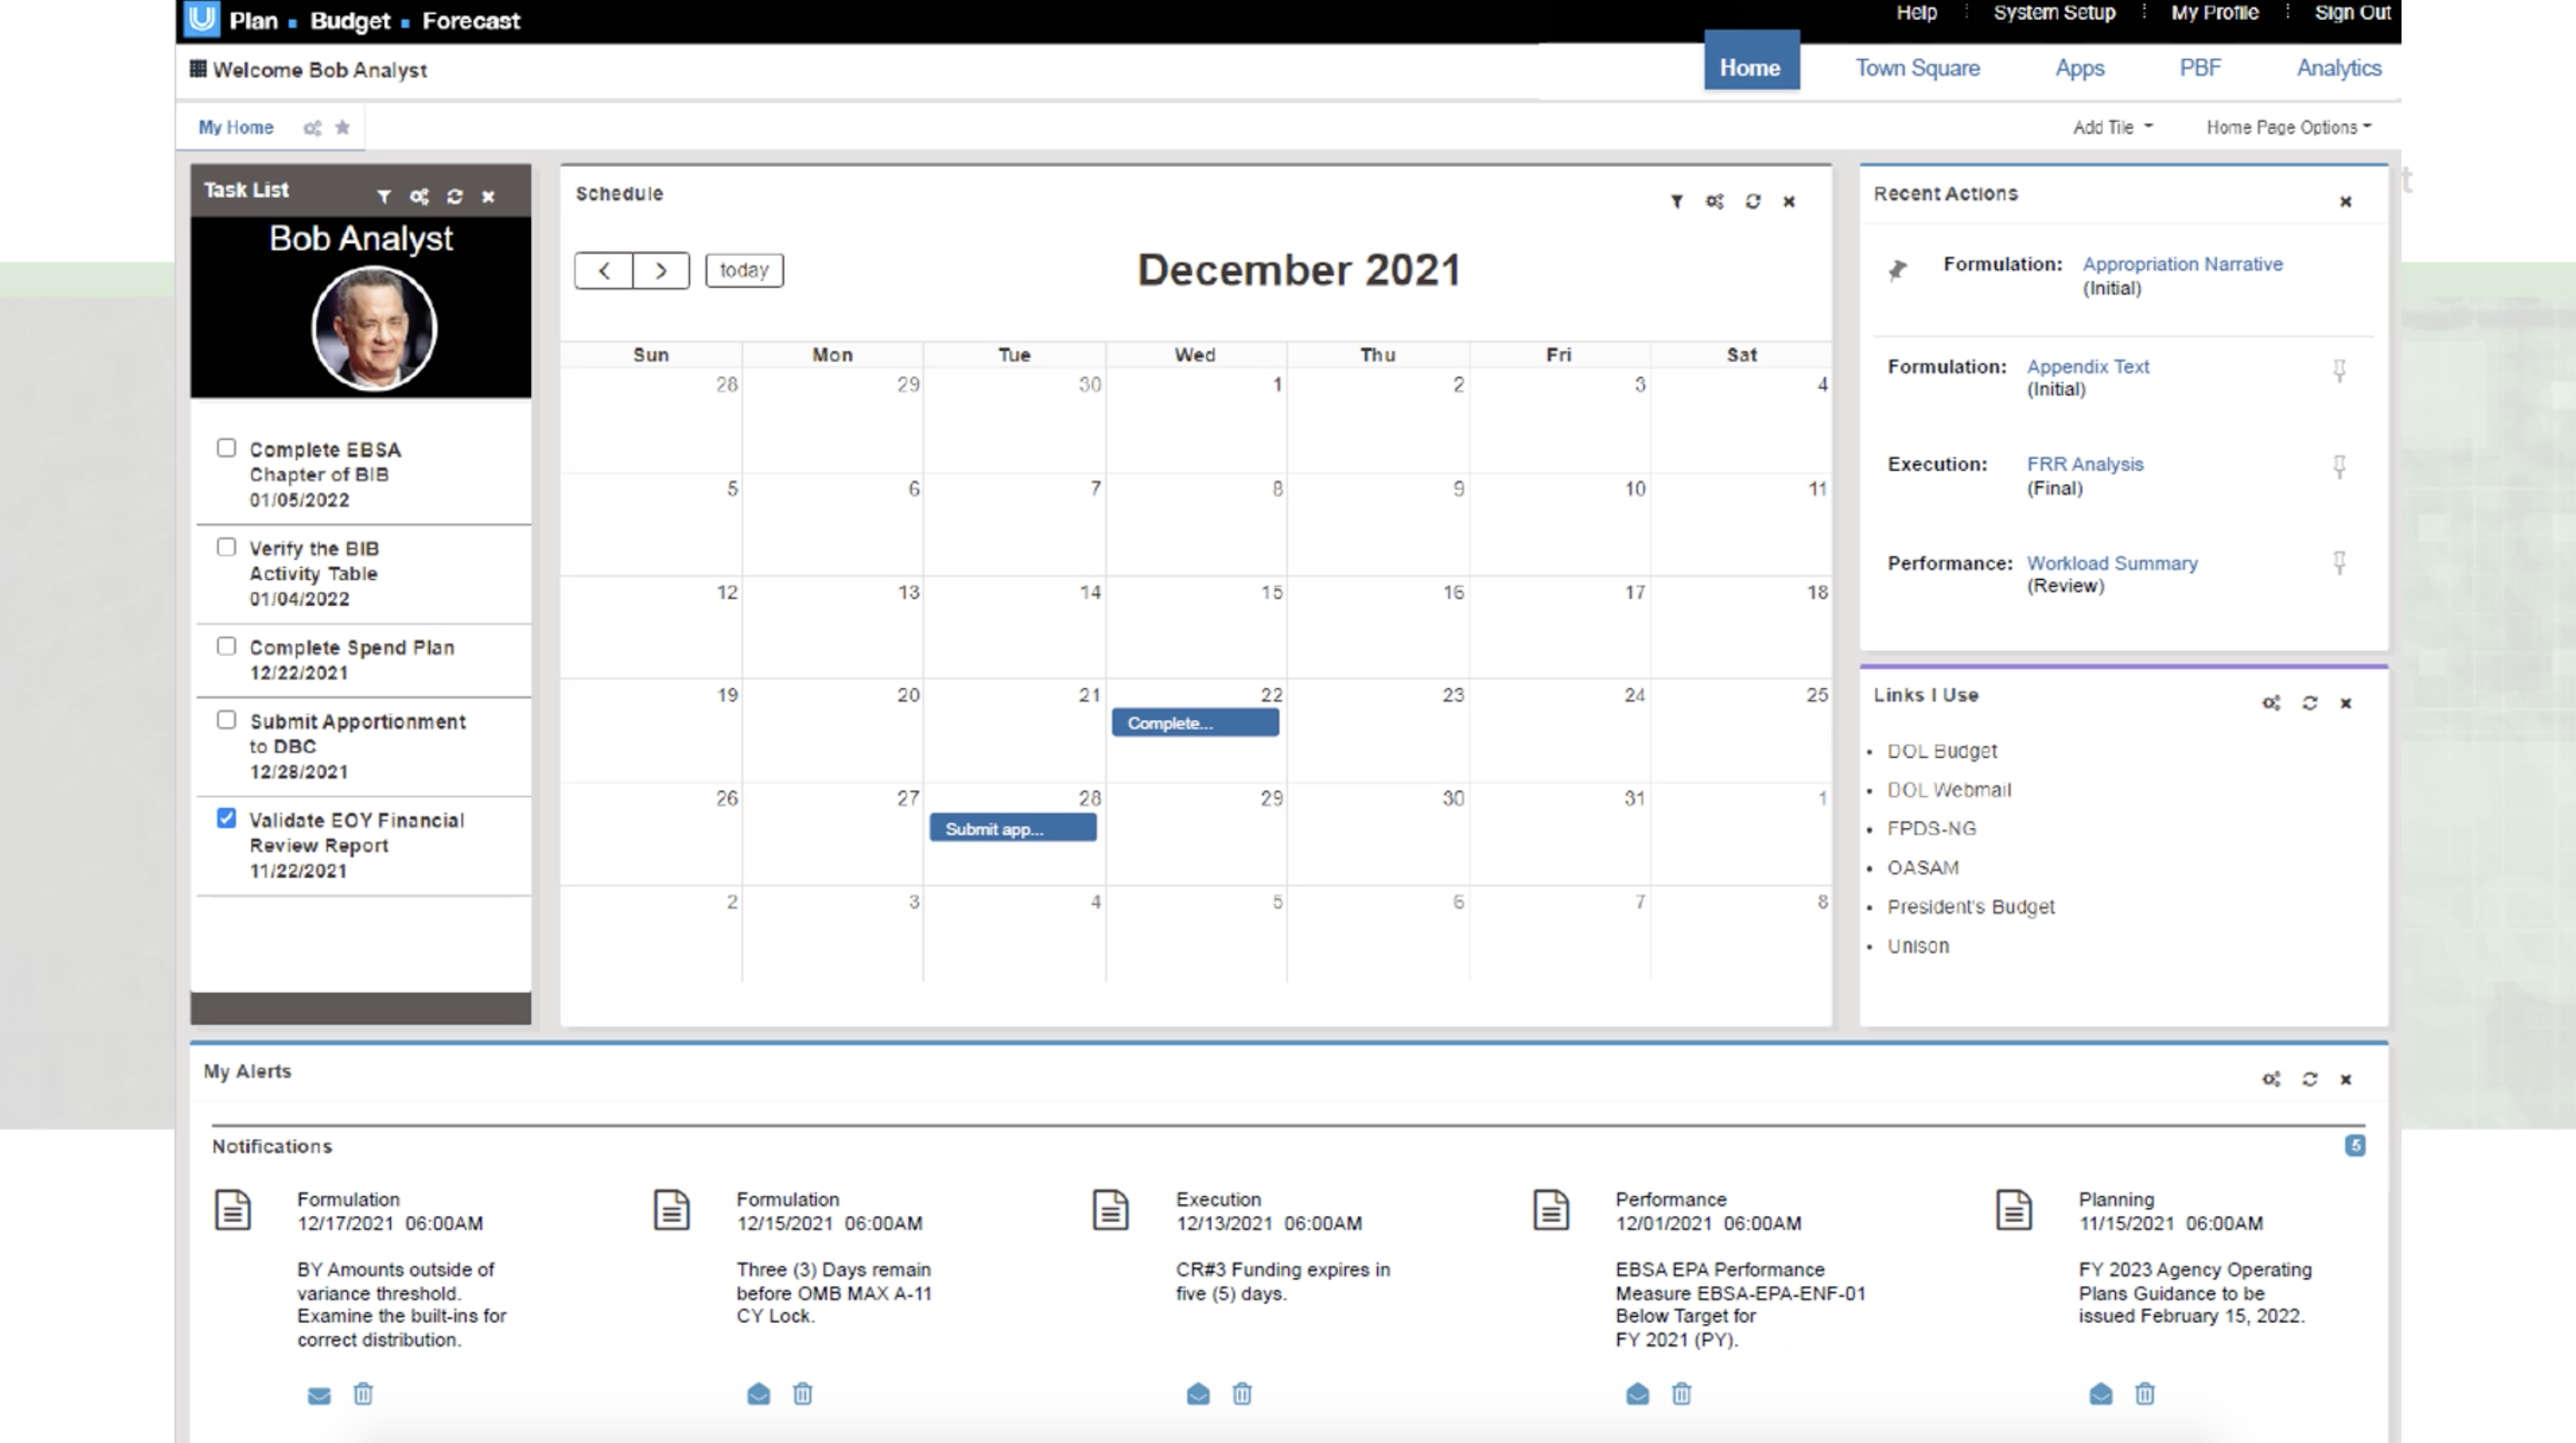 Planning, Budgeting, and Forecasting Home page